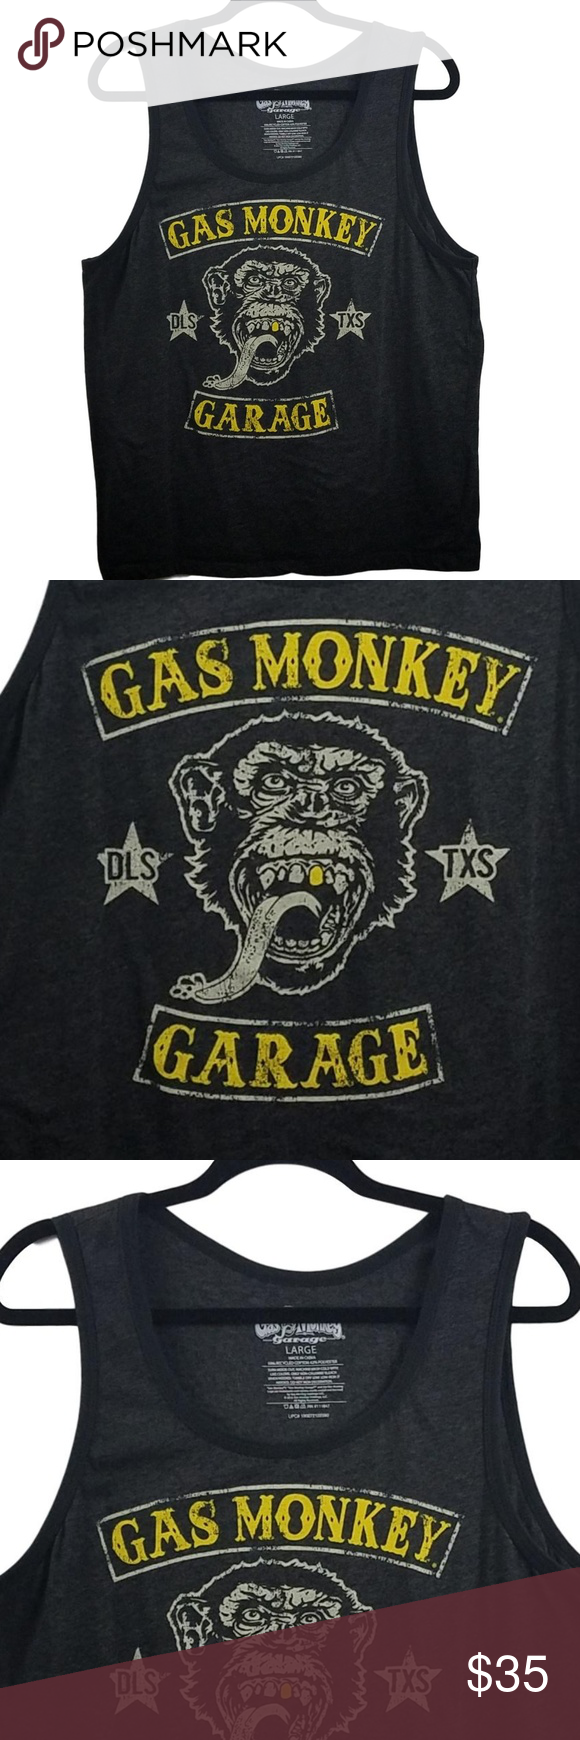 Gas Monkey Garage Hot Rod Muscle Tee Shirt Large Excellent Condition - Size Large - Recycled Cotton / Polyester Blend  Black with Yellow Lettering Graphics  DLS - TXS  Pit to Pit:  21 Armpit Opening 10.5 Length: 26  SKU  0819 - 4/19 Gas Monkey Garage Shirts Tank Tops #gasmonkeygarage Gas Monkey Garage Hot Rod Muscle Tee Shirt Large Excellent Condition - Size Large - Recycled Cotton / Polyester Blend  Black with Yellow Lettering Graphics  DLS - TXS  Pit to Pit:  21 Armpit Opening 10.5 Length: 26 #gasmonkeygarage